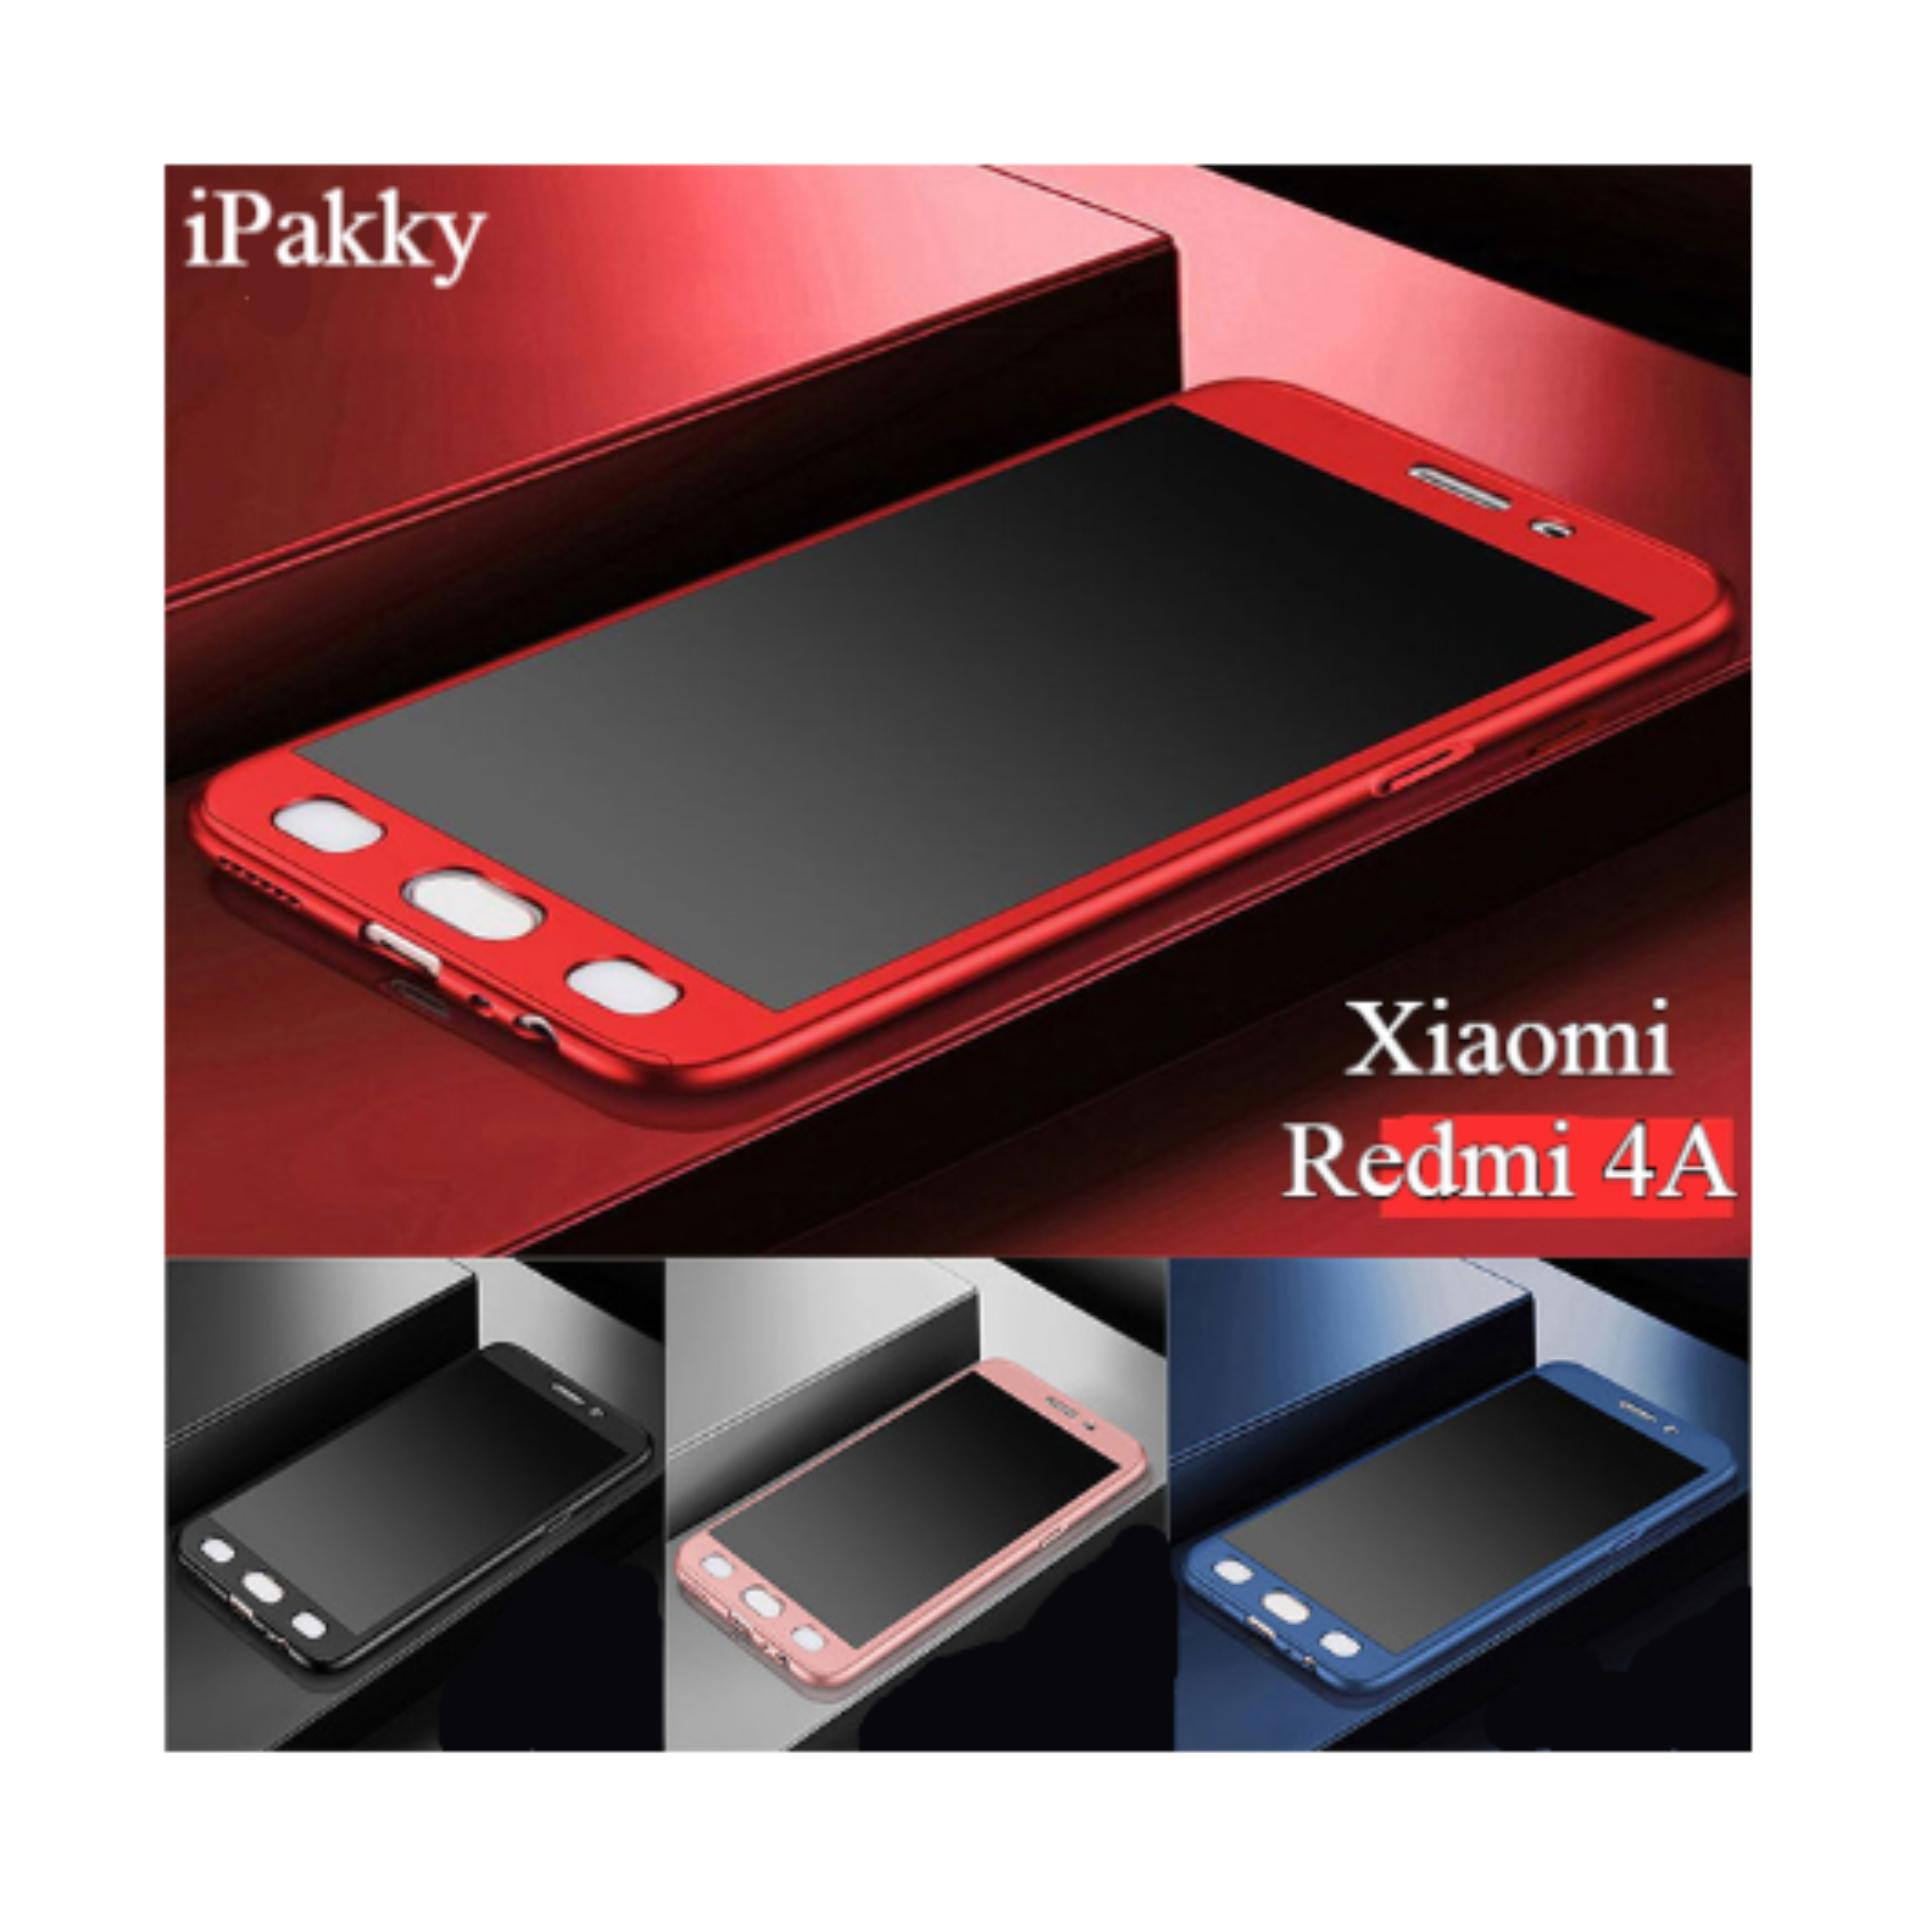 Jual Hardcase Ipaky Case Full Protection 360 Xiaomi Redmi 4A And Tempered Glass Gold Black Red Blue And Rose Gold Abs Ipaky Ori